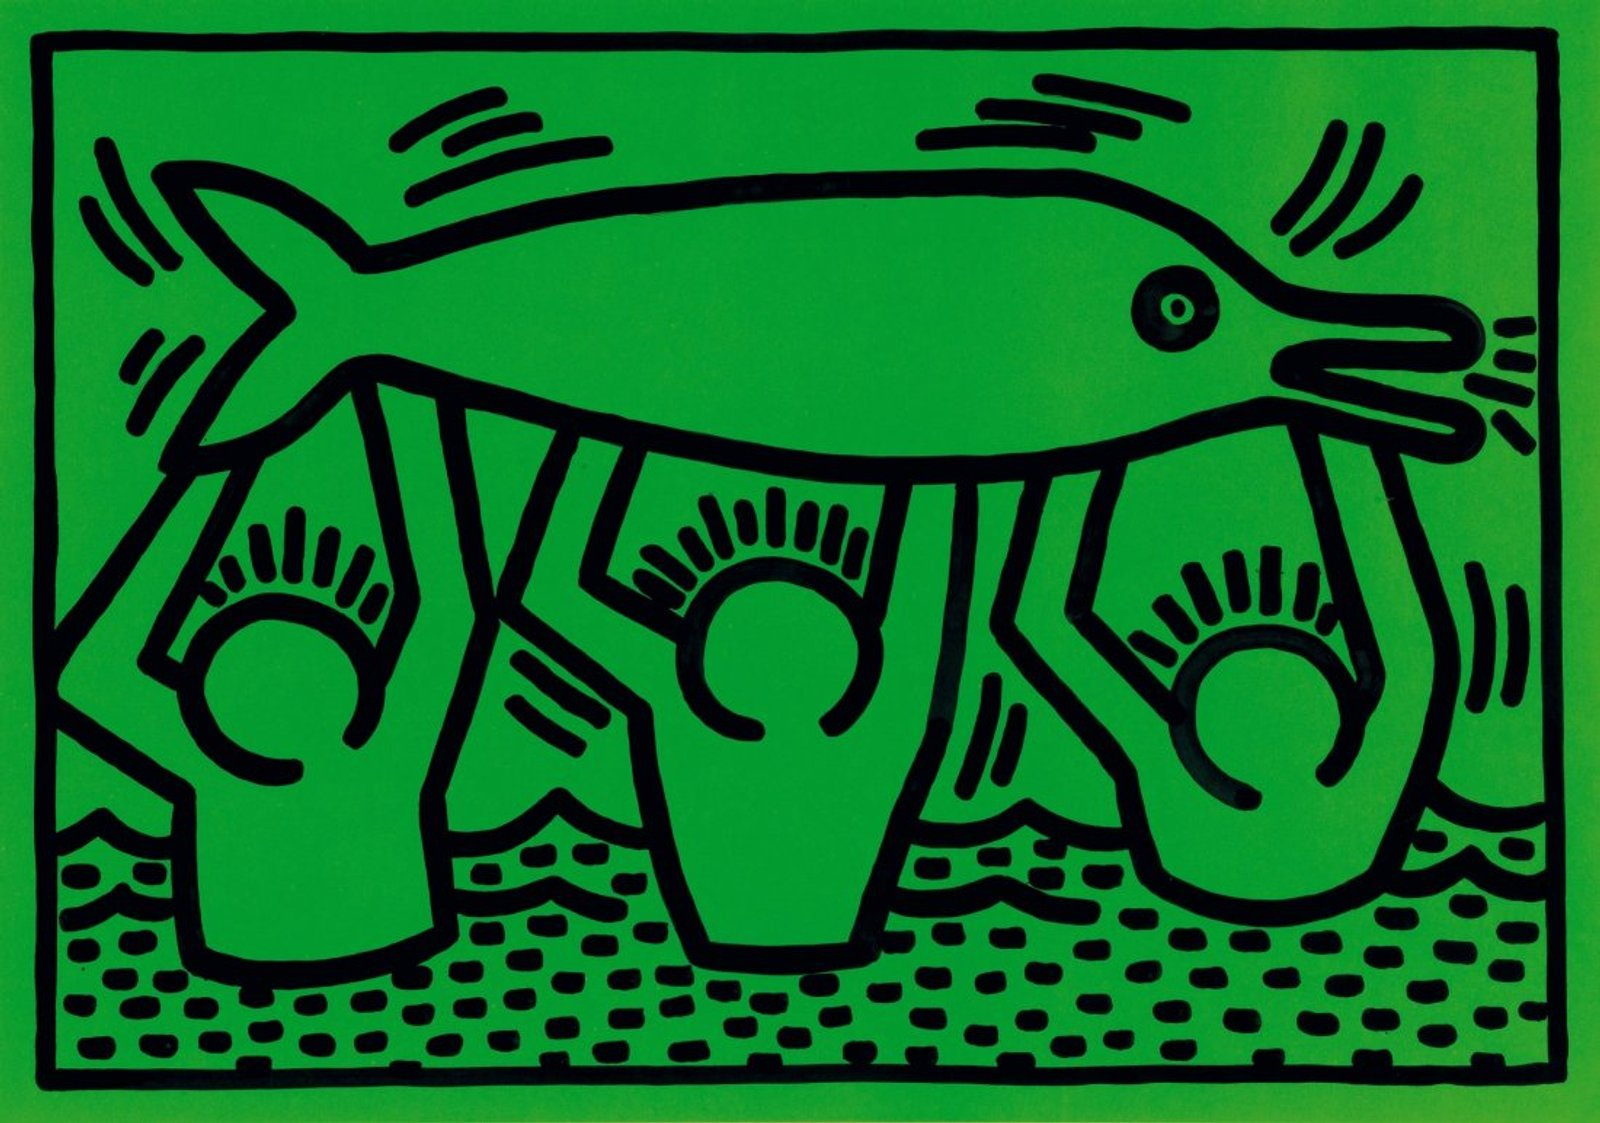 Keith Haring: Pop Art's Radiant Child